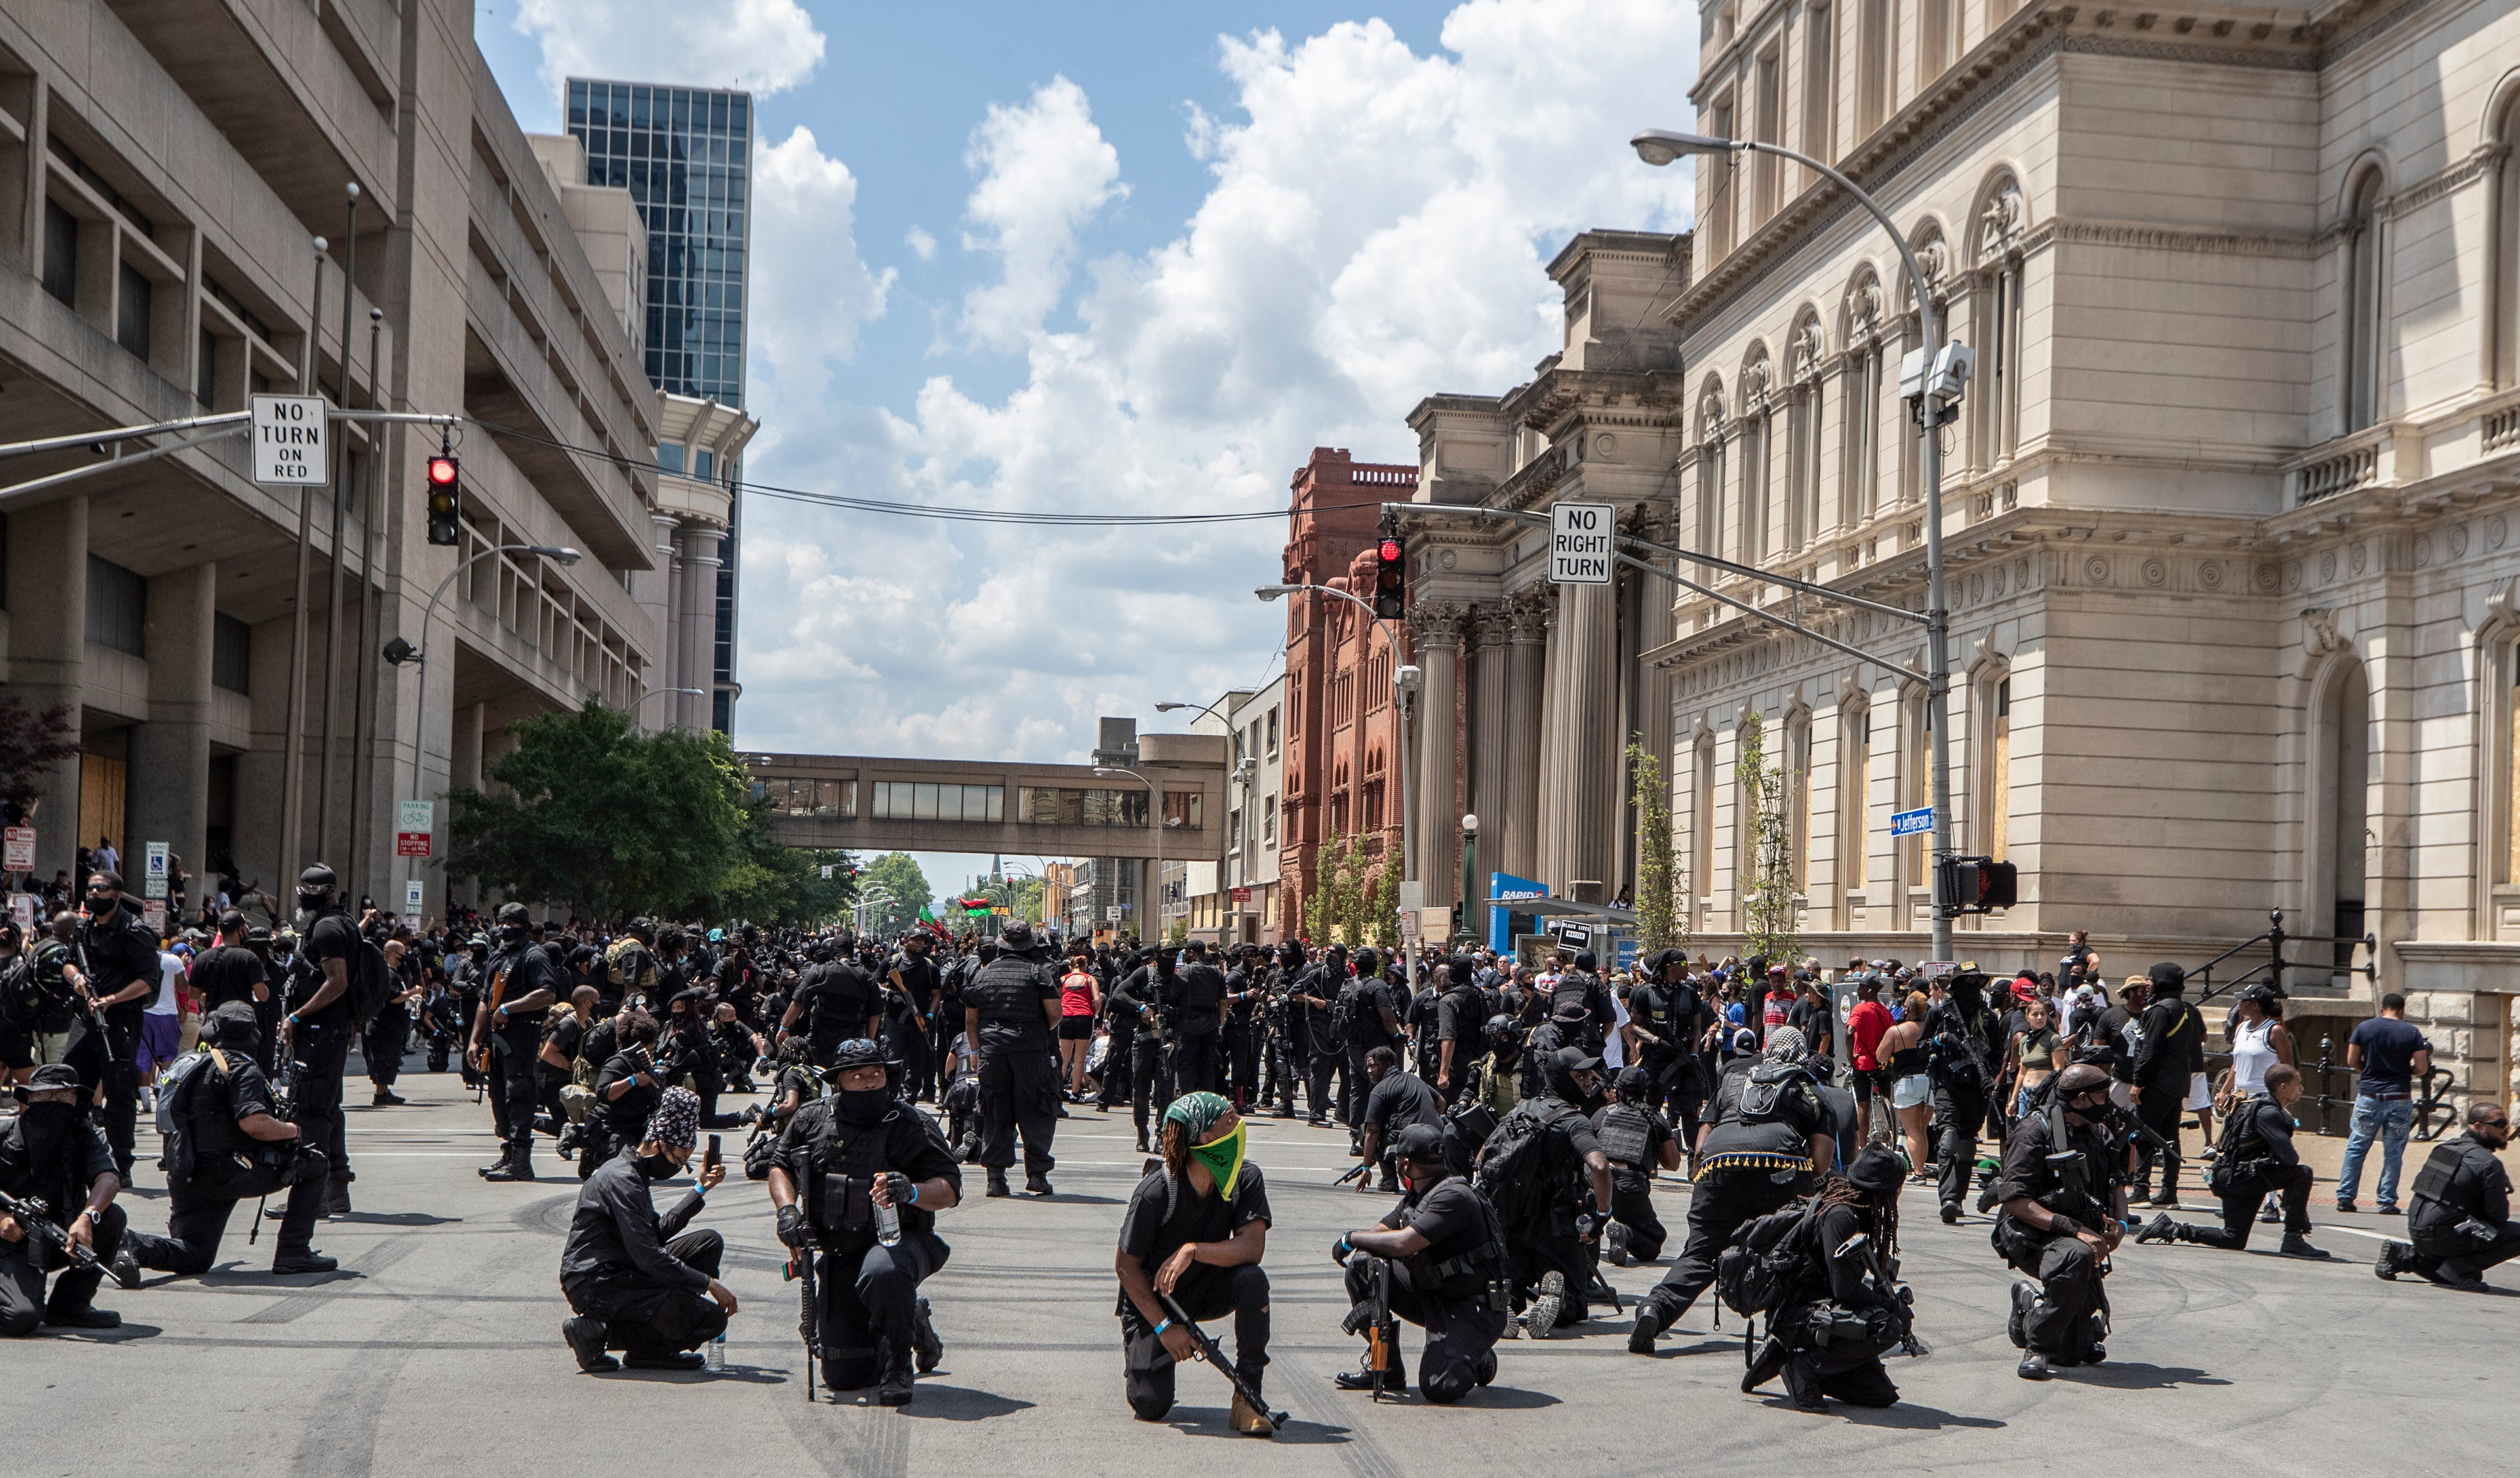 The Not F***ing Around Coalition came to Louisville in support of racial justice while the Three Percenters militia also was in town. Louisville police kept the two groups apart with barricades. The NFAC paused to check for snipers at Sixth and Jefferson streets. July 25, 2020.